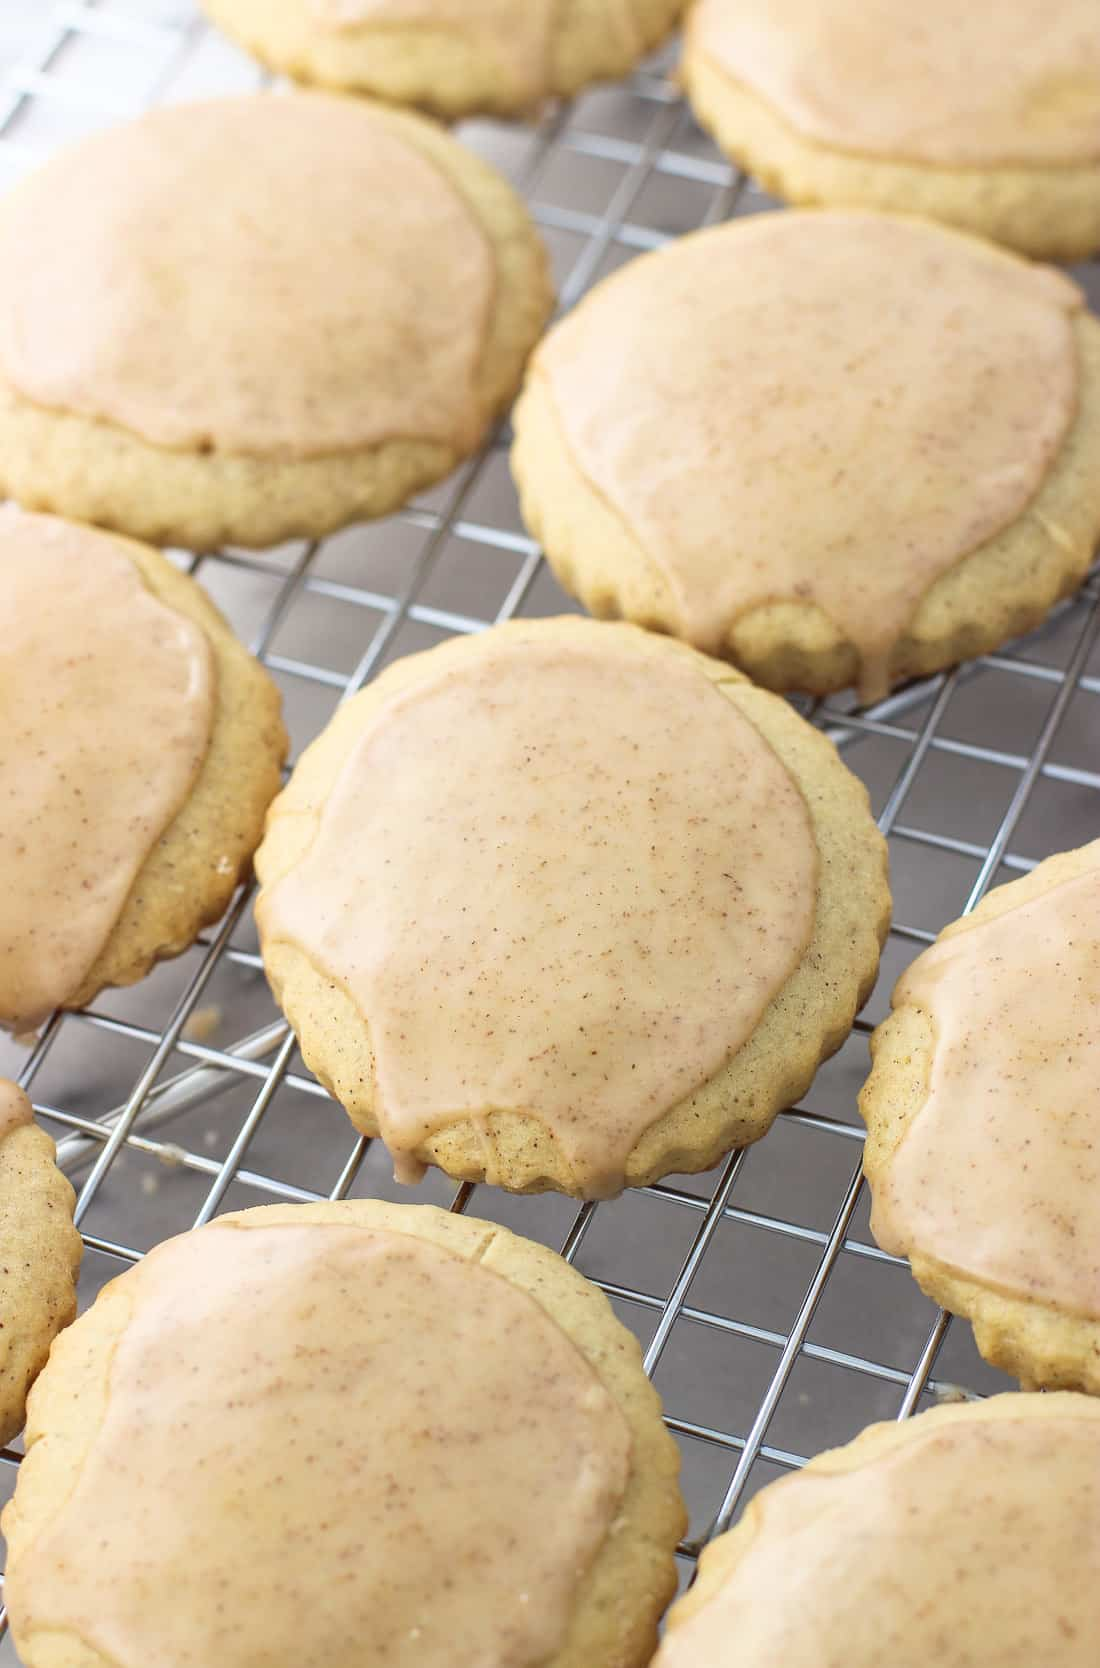 Iced cinnamon sugar cookies lined up on a wire rack.